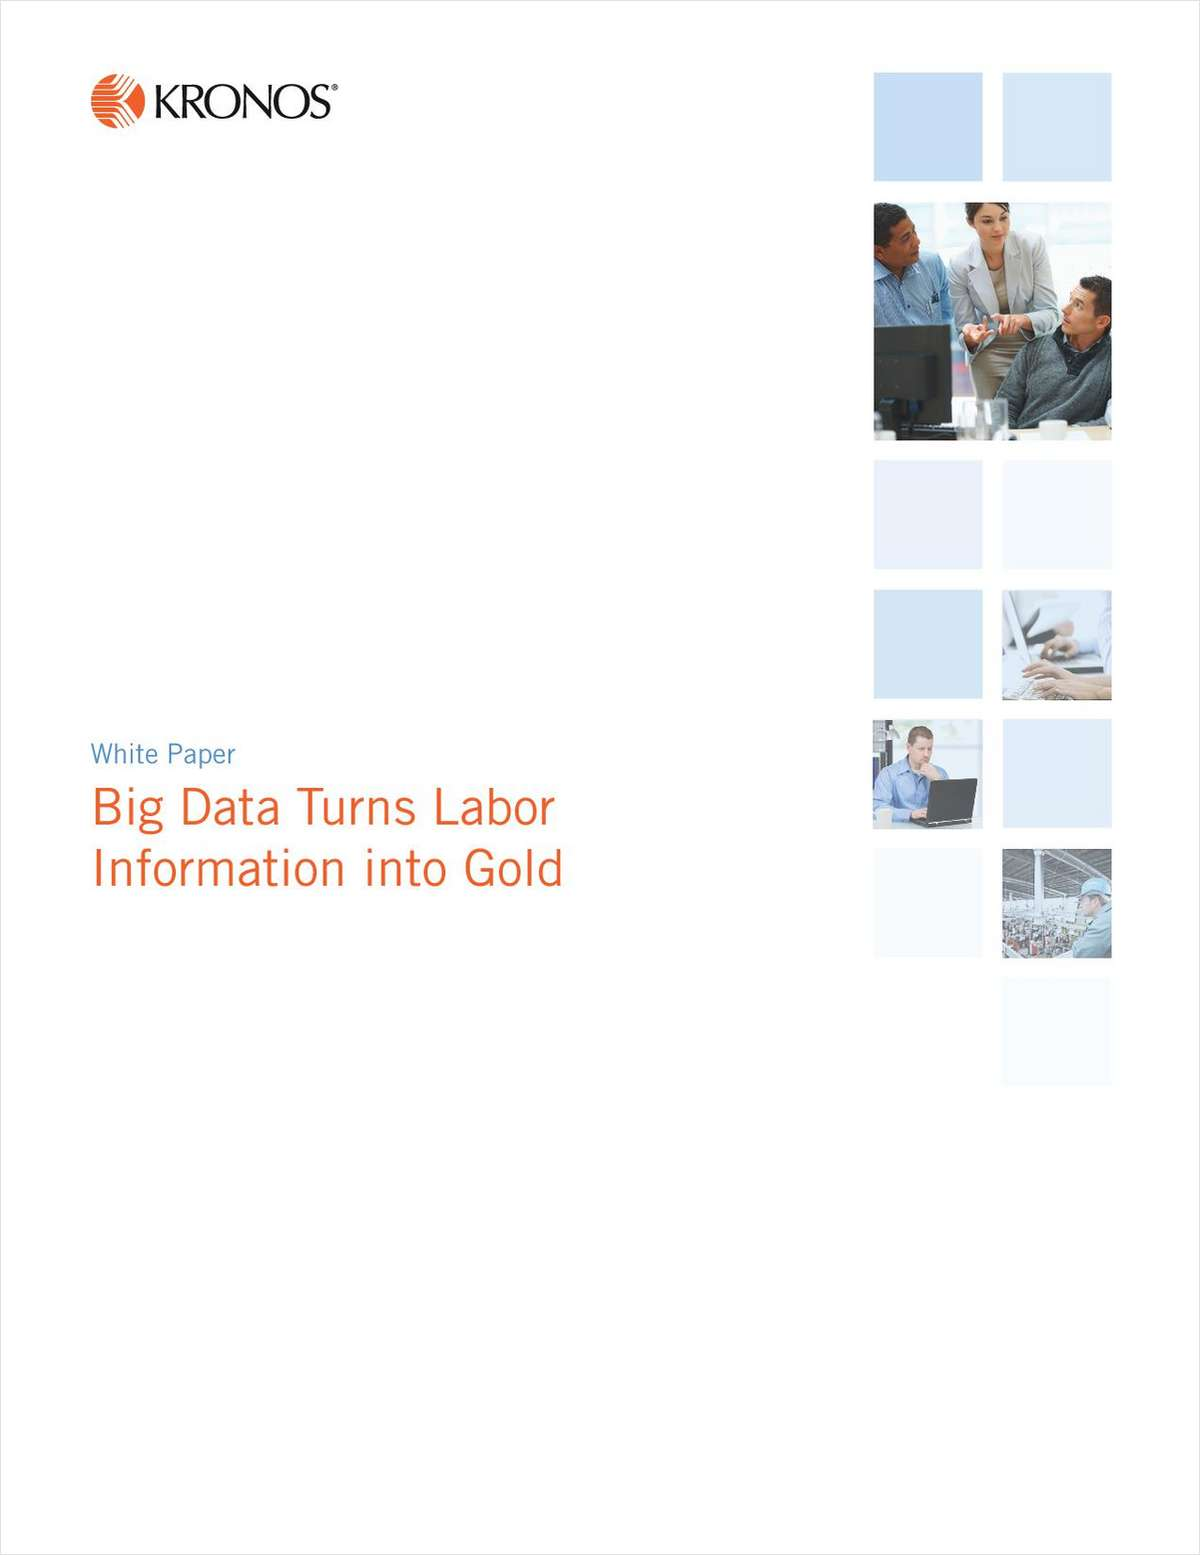 Big Data Turns Labor Information into Gold